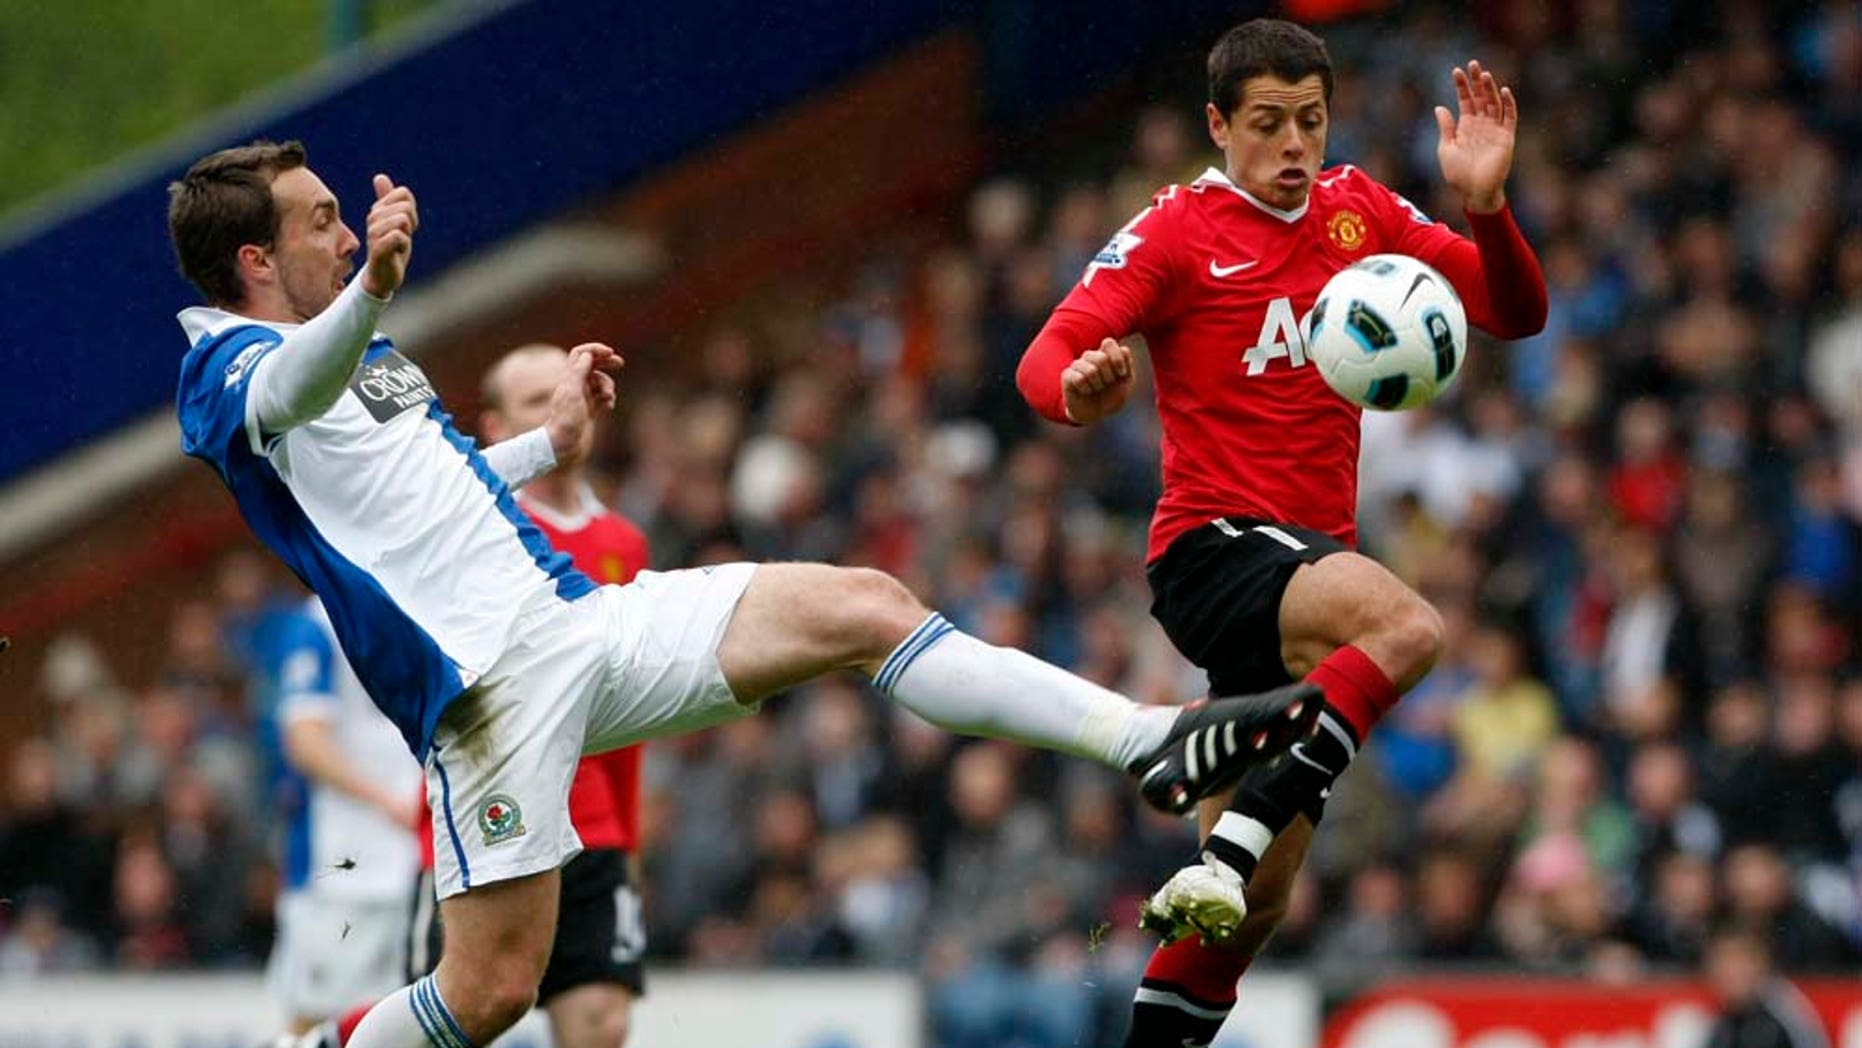 Manchester United's Javier Hernandez, right, vies for the ball against Blackburn's Gael Givet during their English Premier League soccer match at Ewood Park, Blackburn, England, Saturday May 14, 2011. (AP Photo/Tim Hales)  NO INTERNET/MOBILE USAGE WITHOUT FOOTBALL ASSOCIATION PREMIER LEAGUE (FAPL) LICENCE. CALL +44 (0) 20 7864 9121 or EMAIL info@football-dataco.com FOR DETAILS